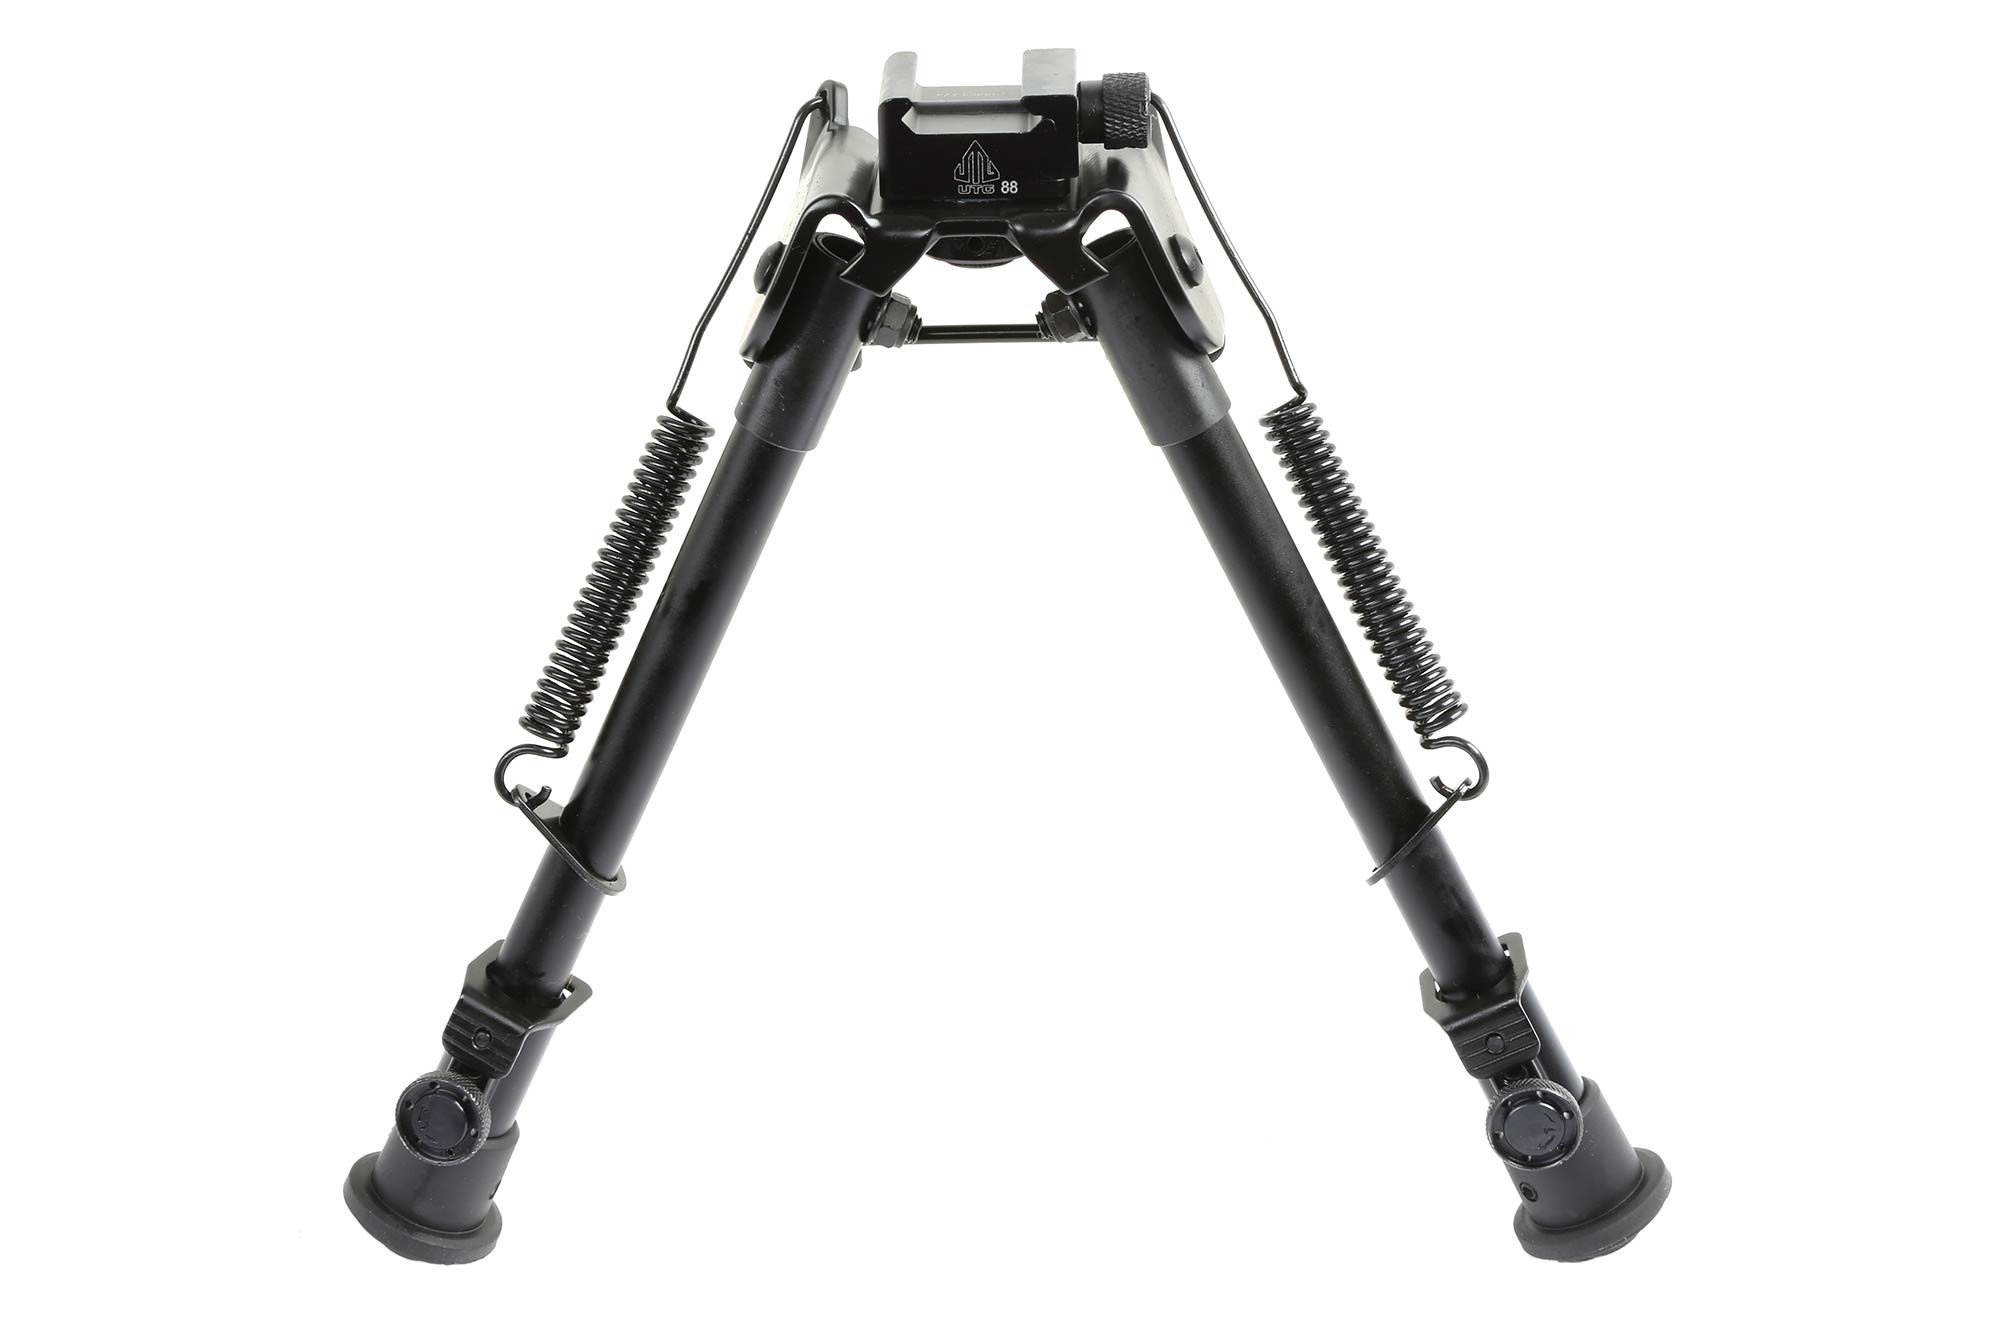 Champion Adjustable Bipod W Cant 13 5 To 23 Black Lever Arms